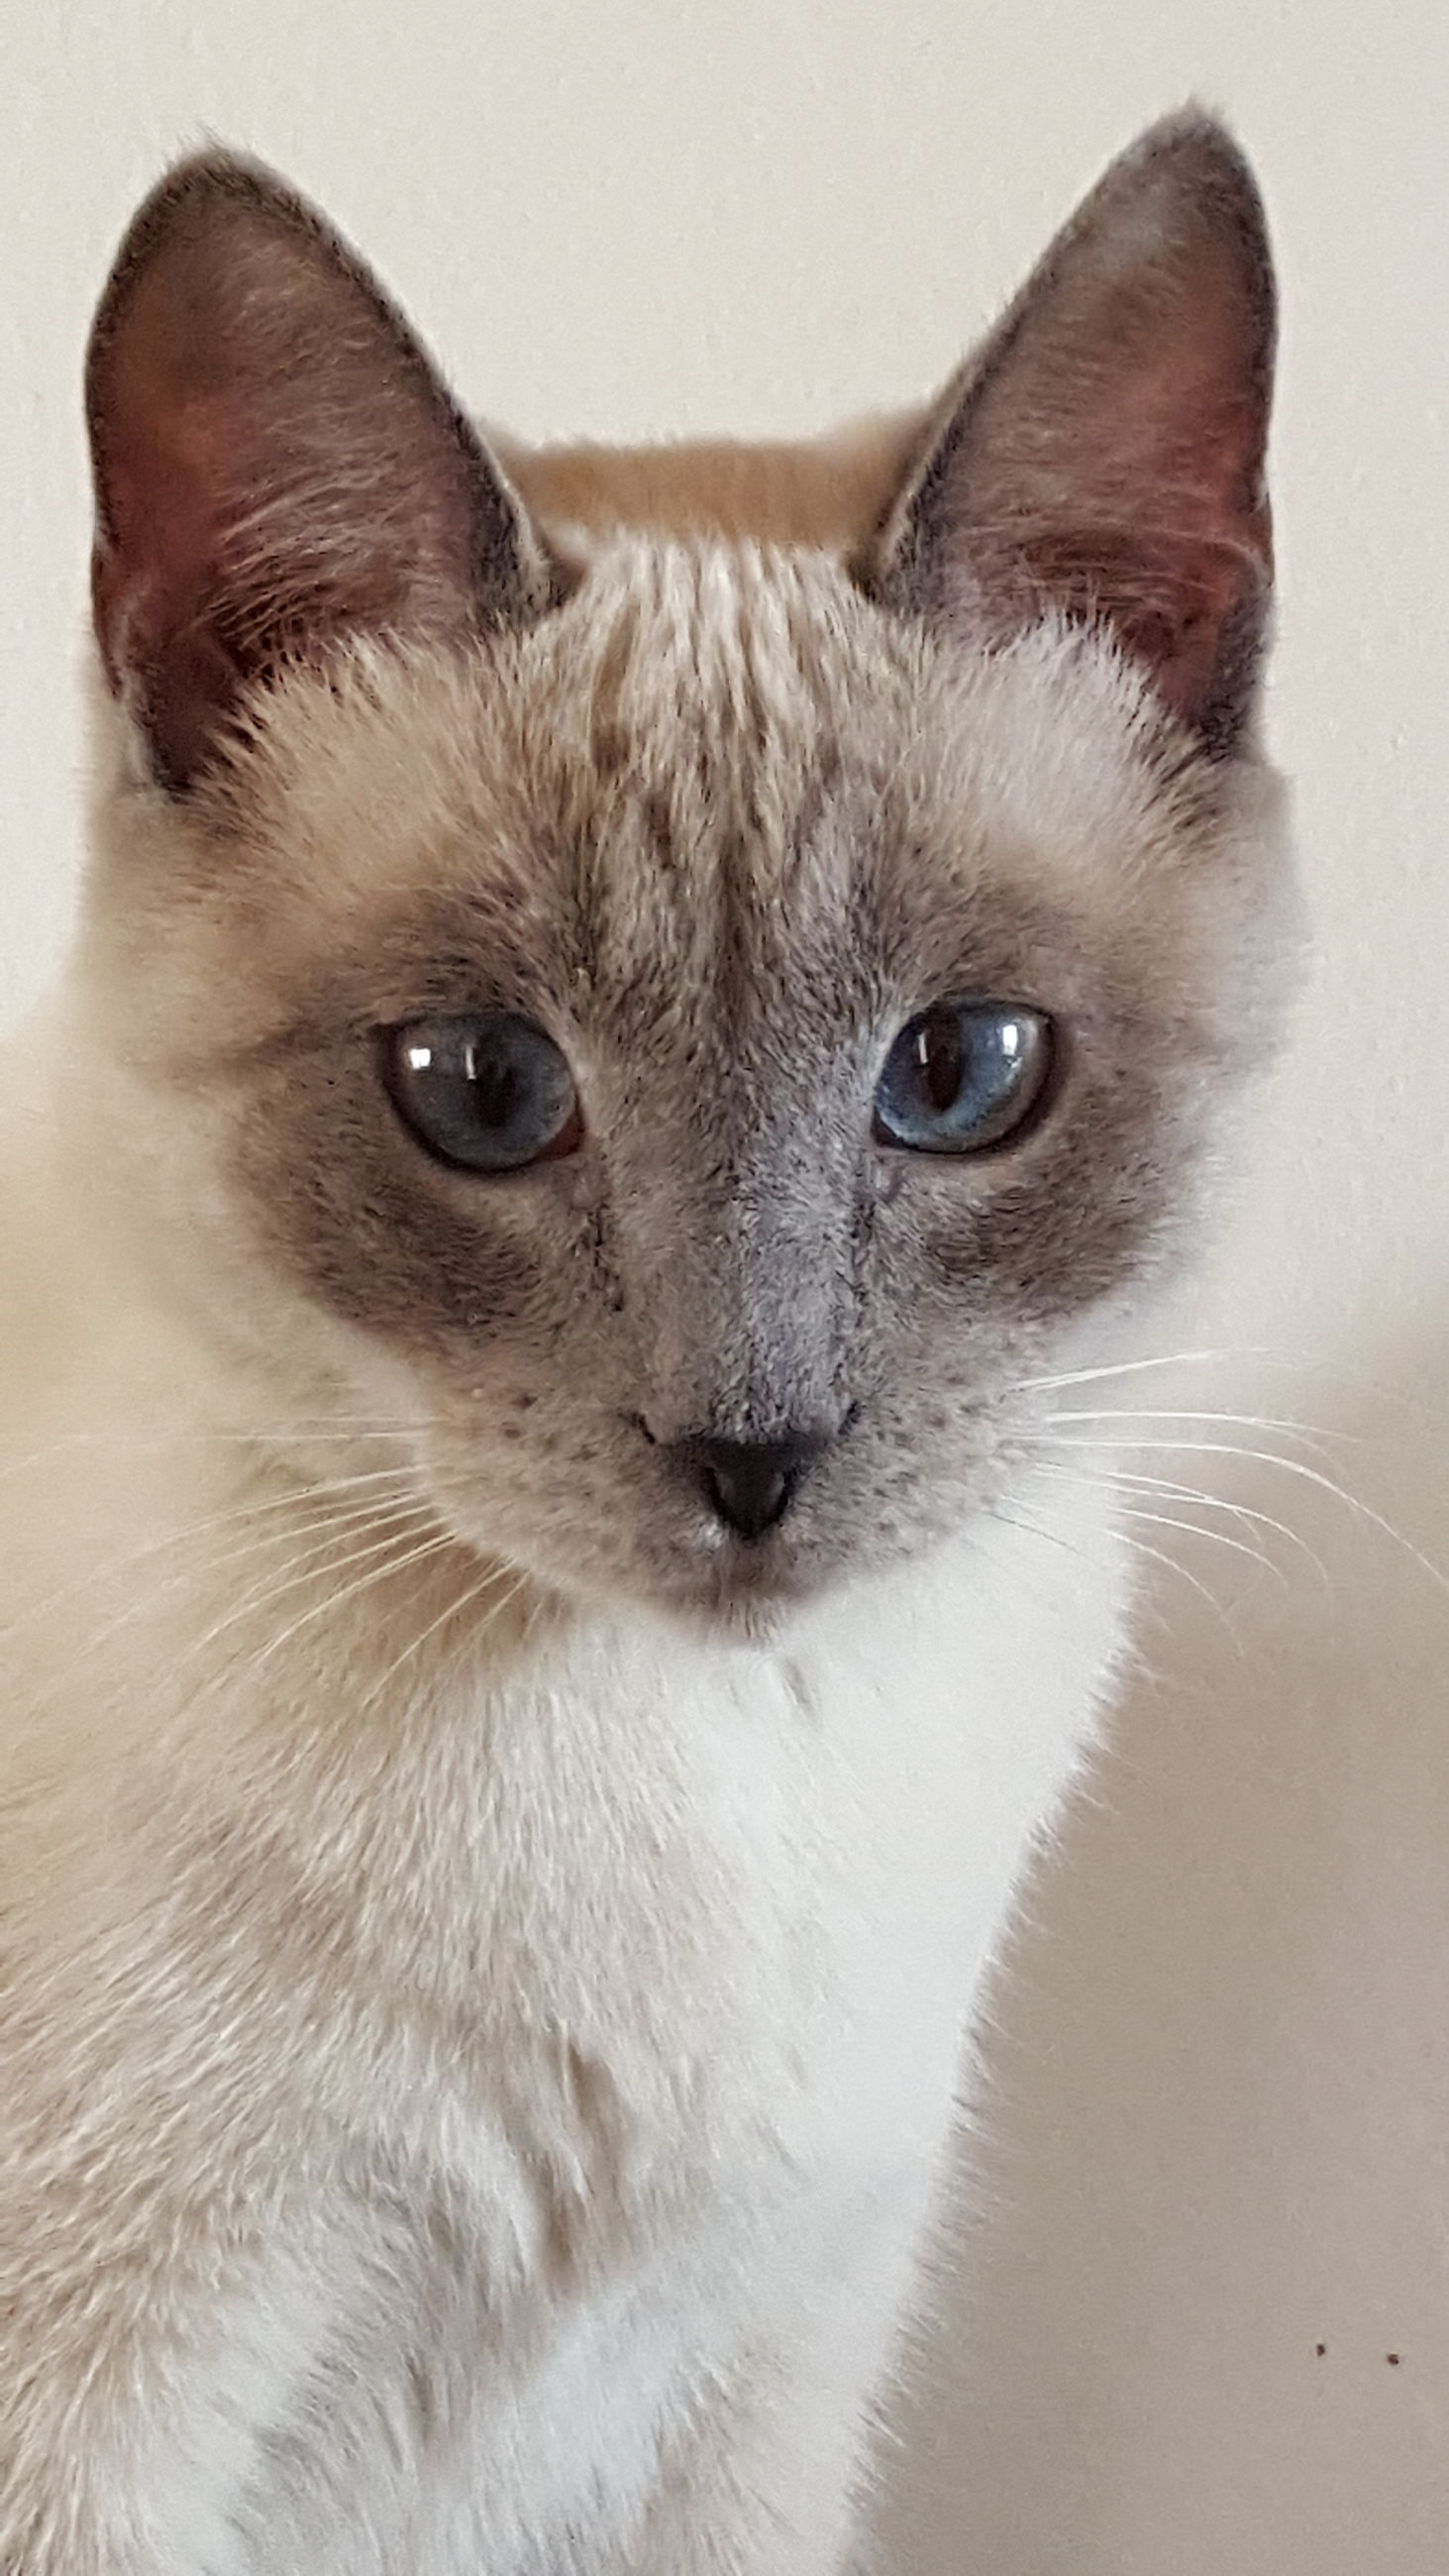 domestic cat, pets, domestic animals, feline, animal themes, portrait, cat, one animal, mammal, whisker, looking at camera, animal head, indoors, no people, kitten, siamese cat, close-up, white background, day